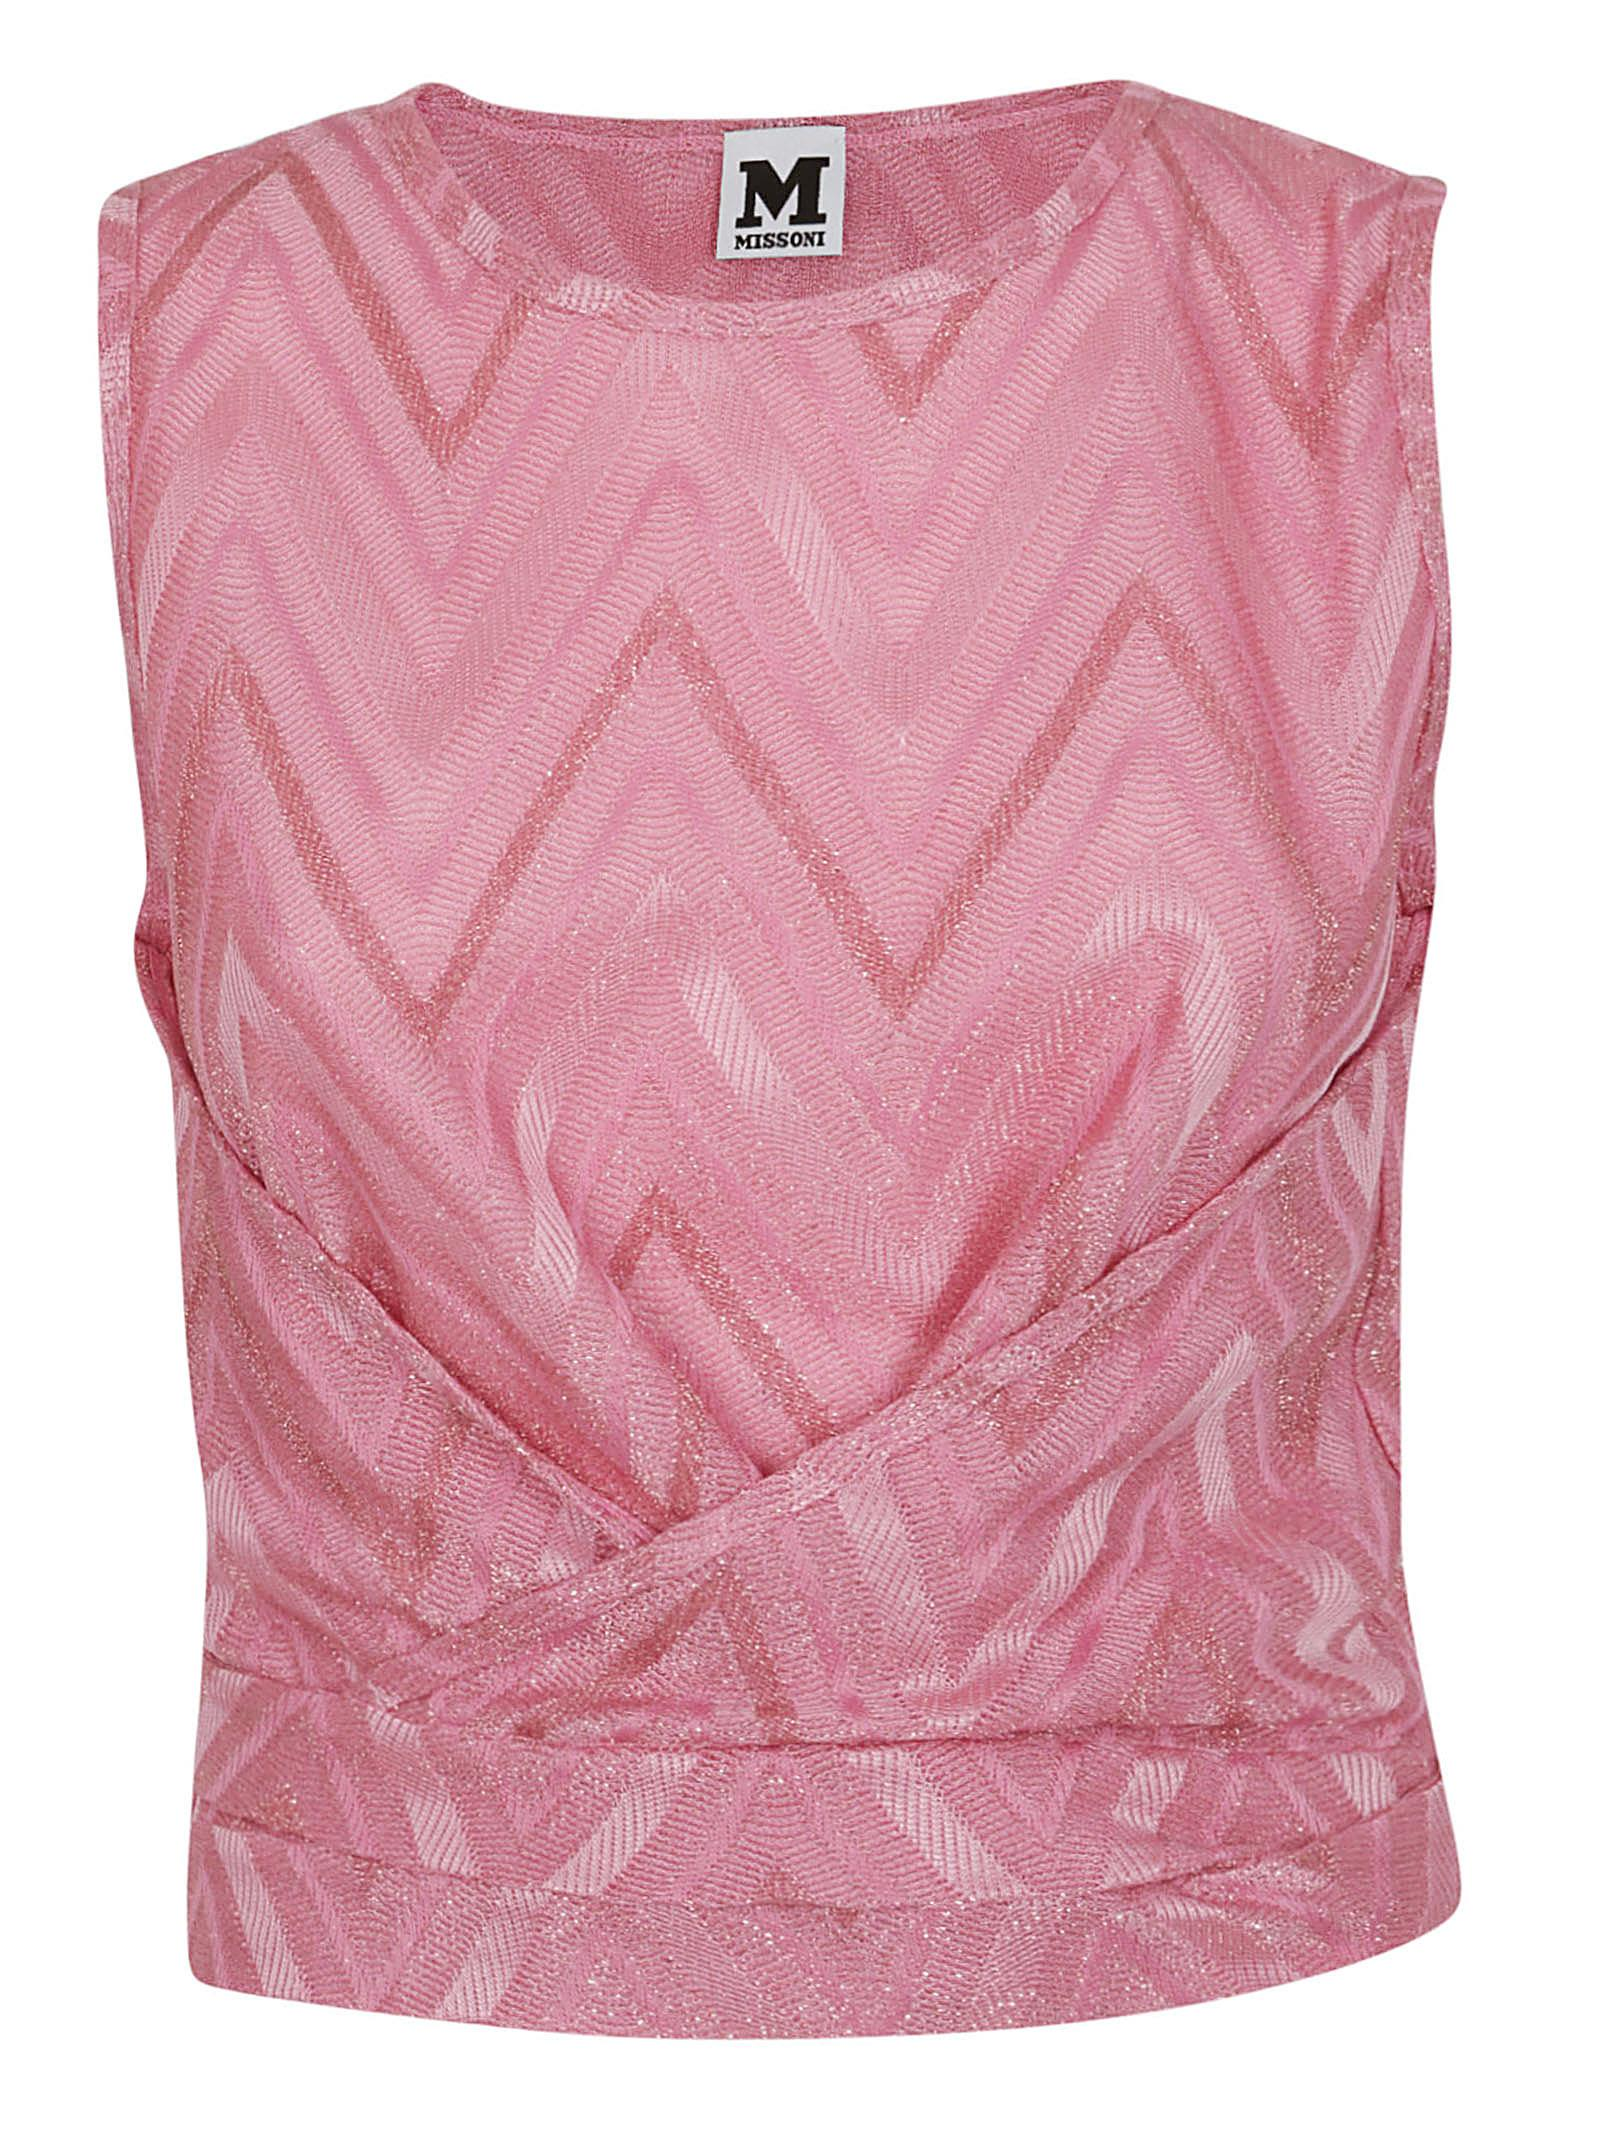 M Missoni | M Missoni Chevron Ruched Top | Clouty